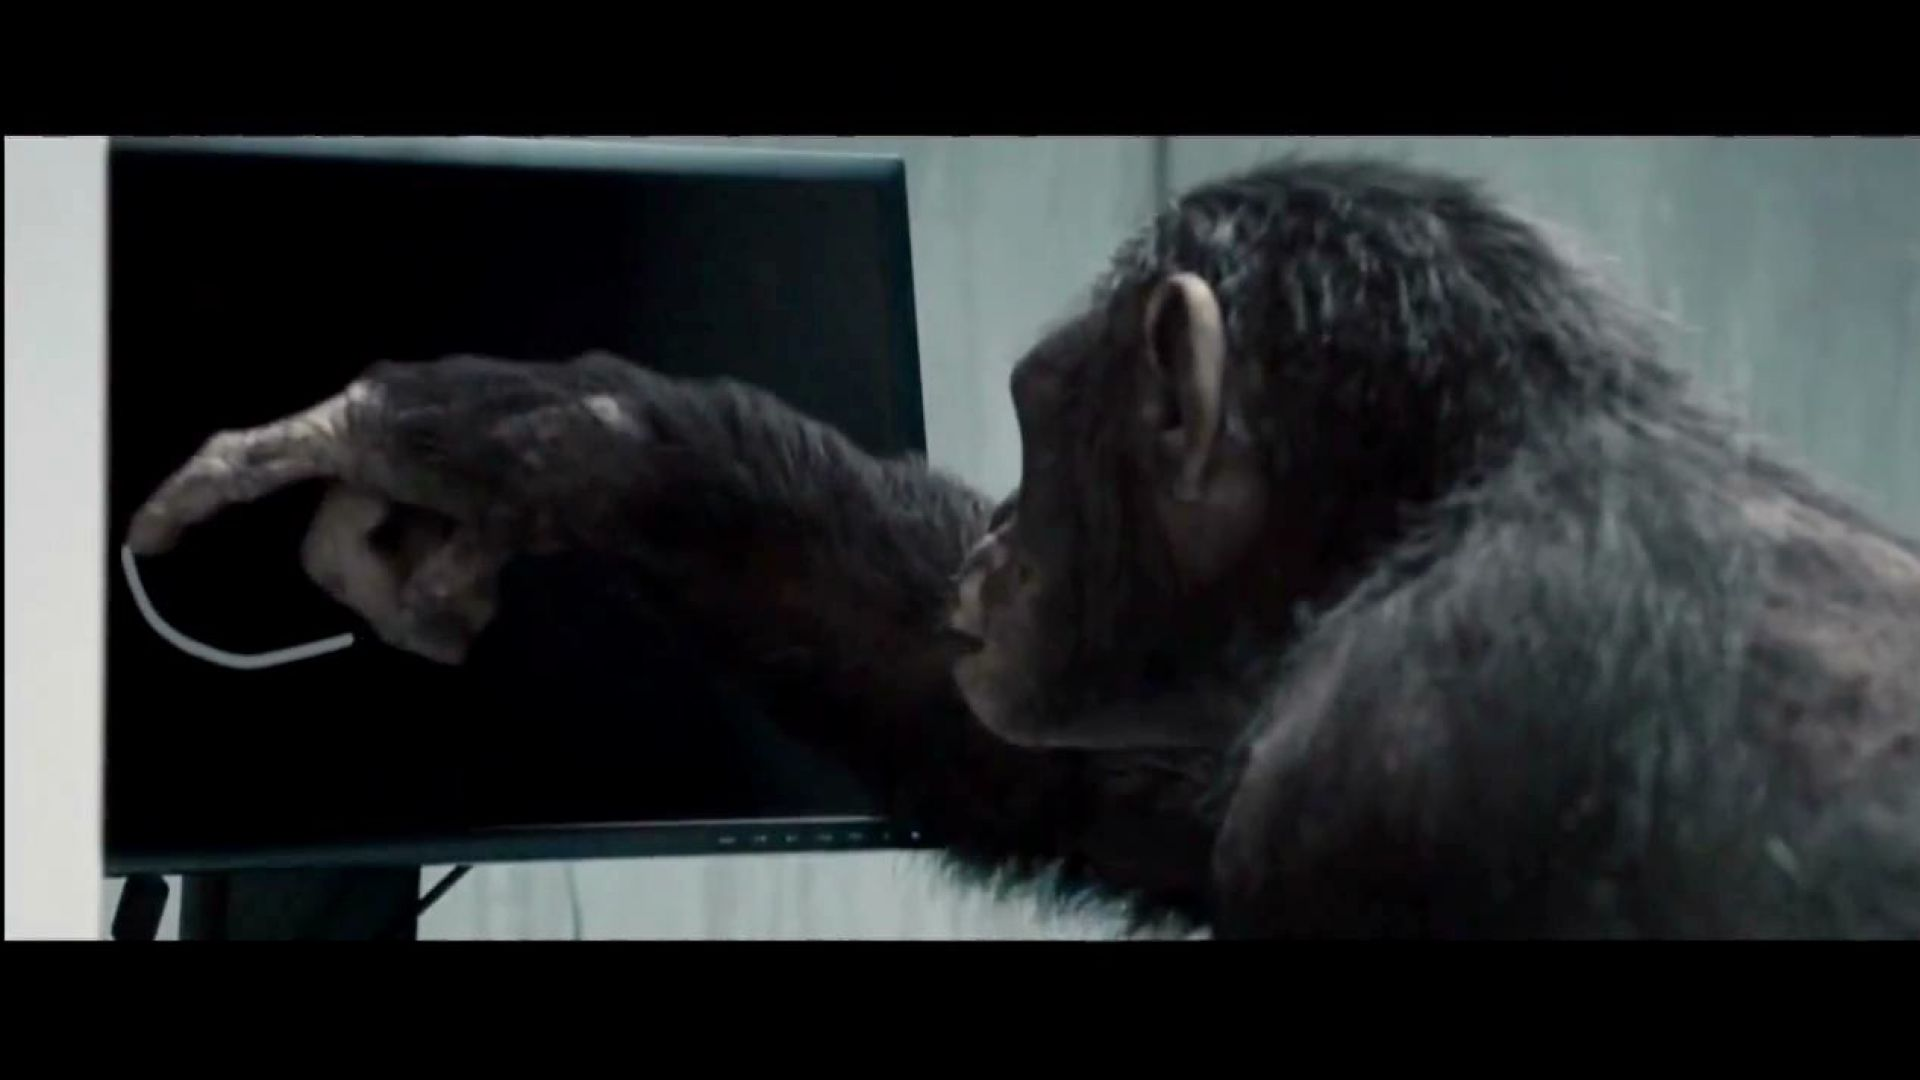 Don't ever let them catch you. Rise of the Planet of the Apes